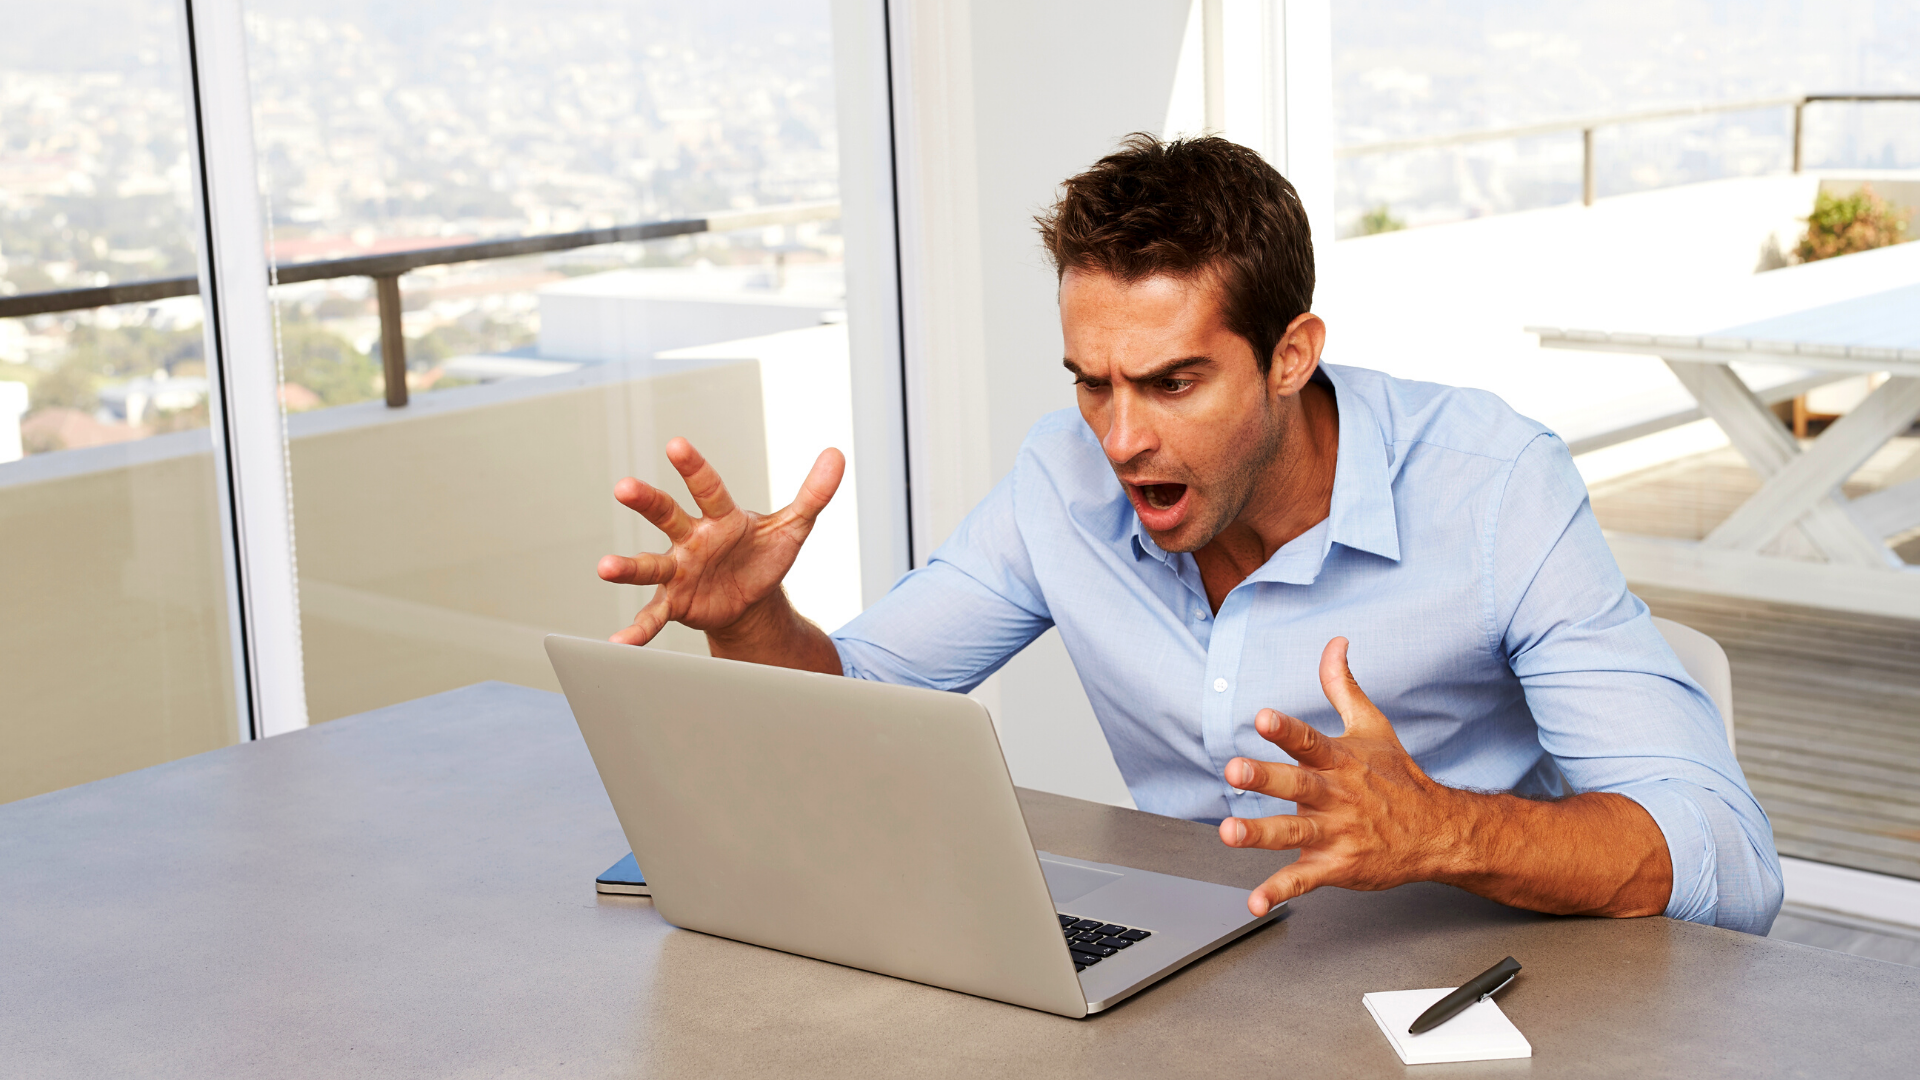 Read: Don't Let an Internet Outage Negatively Impact Your Business